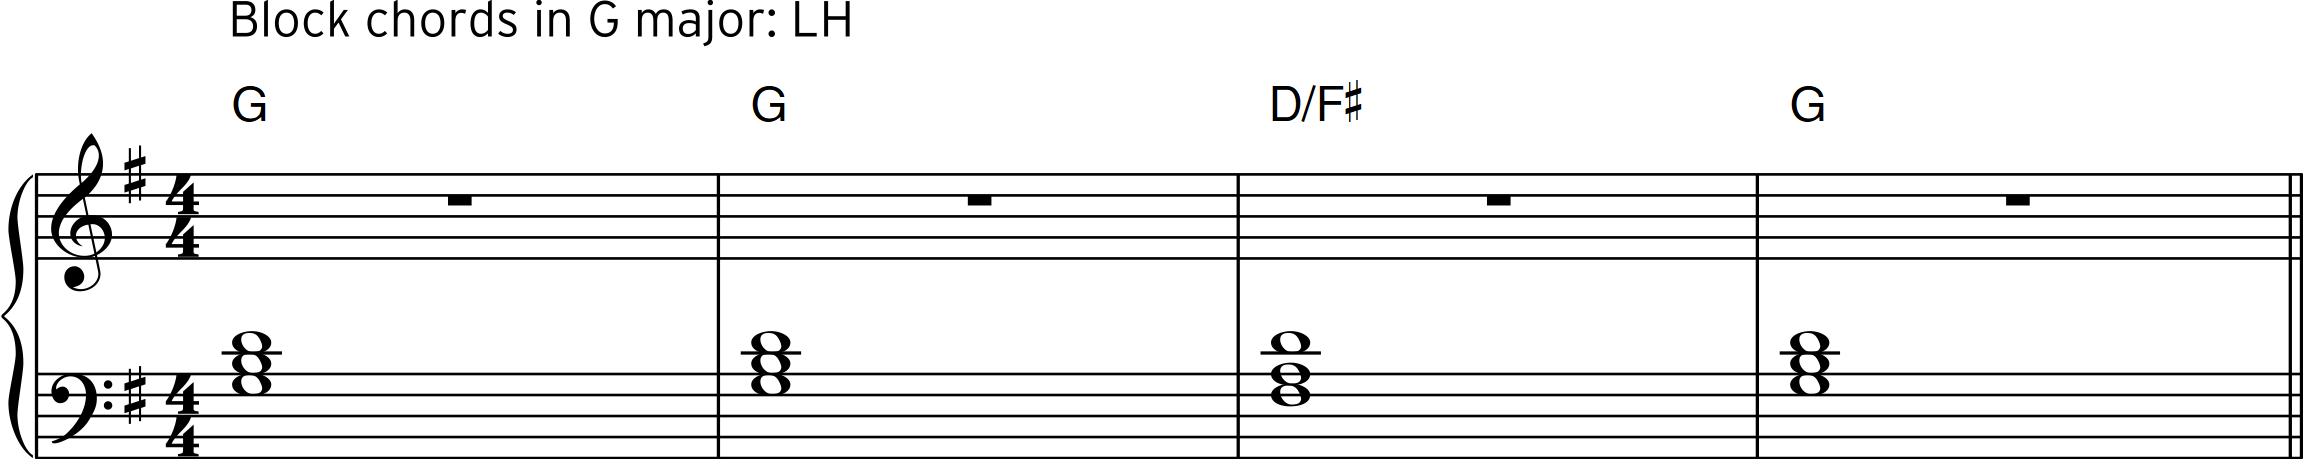 Fig 4 part 1 (4 bar sequence in G major LH) NEW